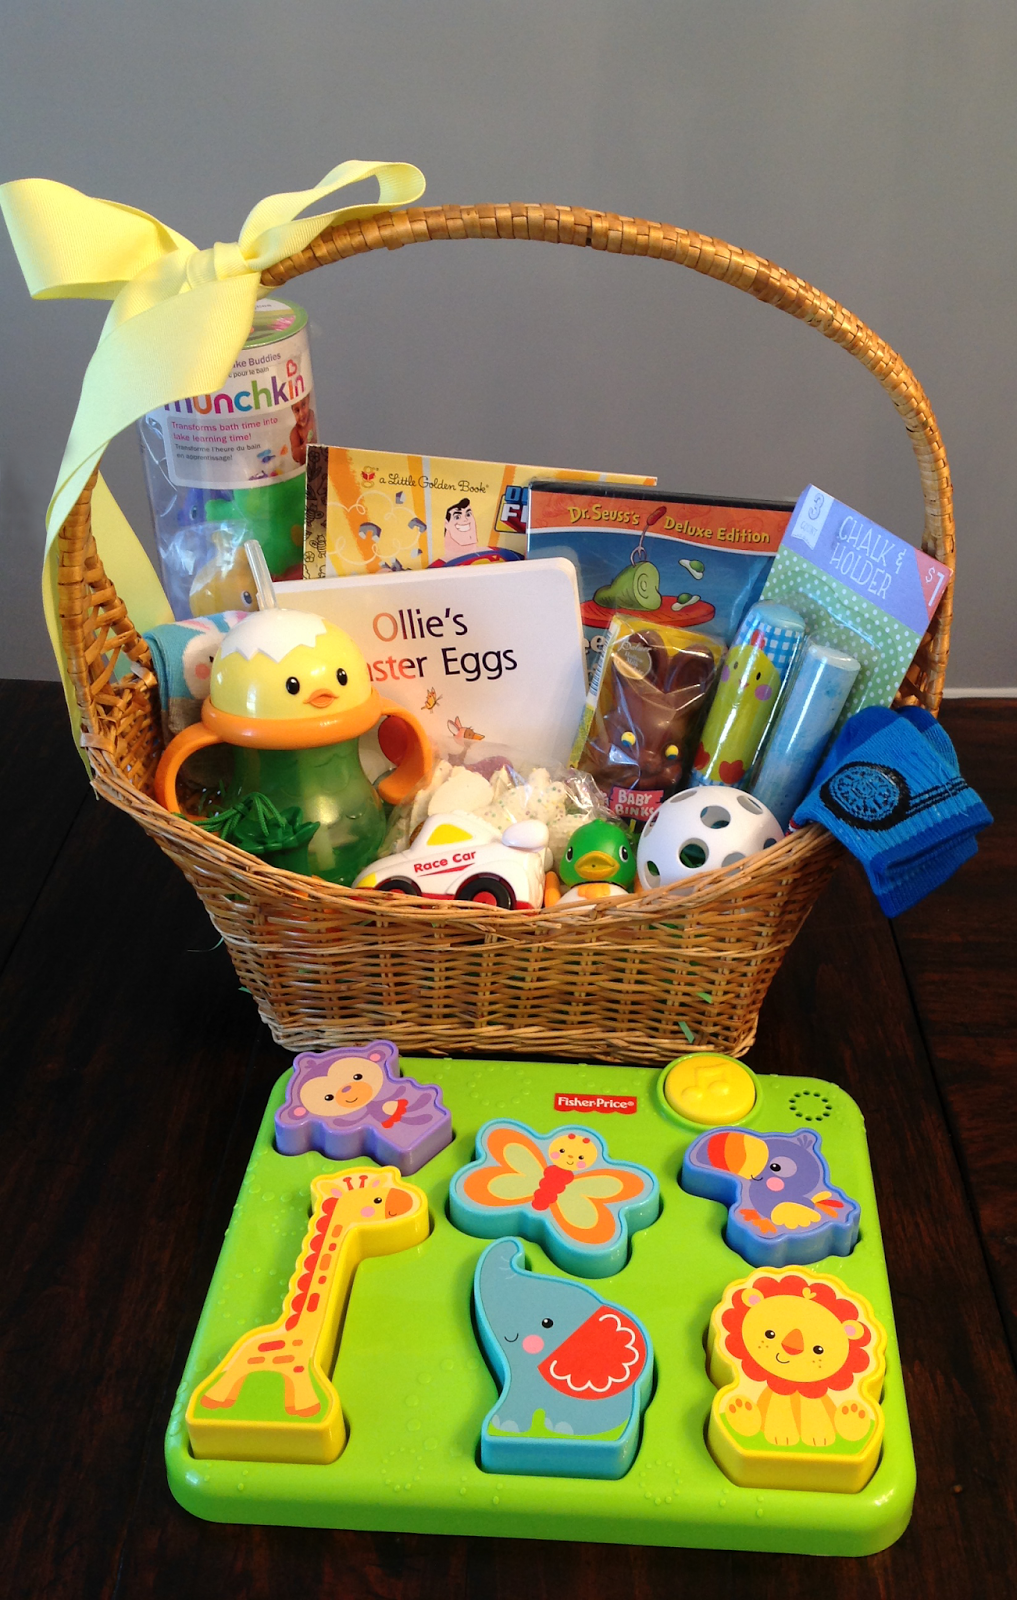 Hand me down mom genes 95 easter basket ideas for babies hand me down mom genes 95 easter basket ideas for babies toddlers negle